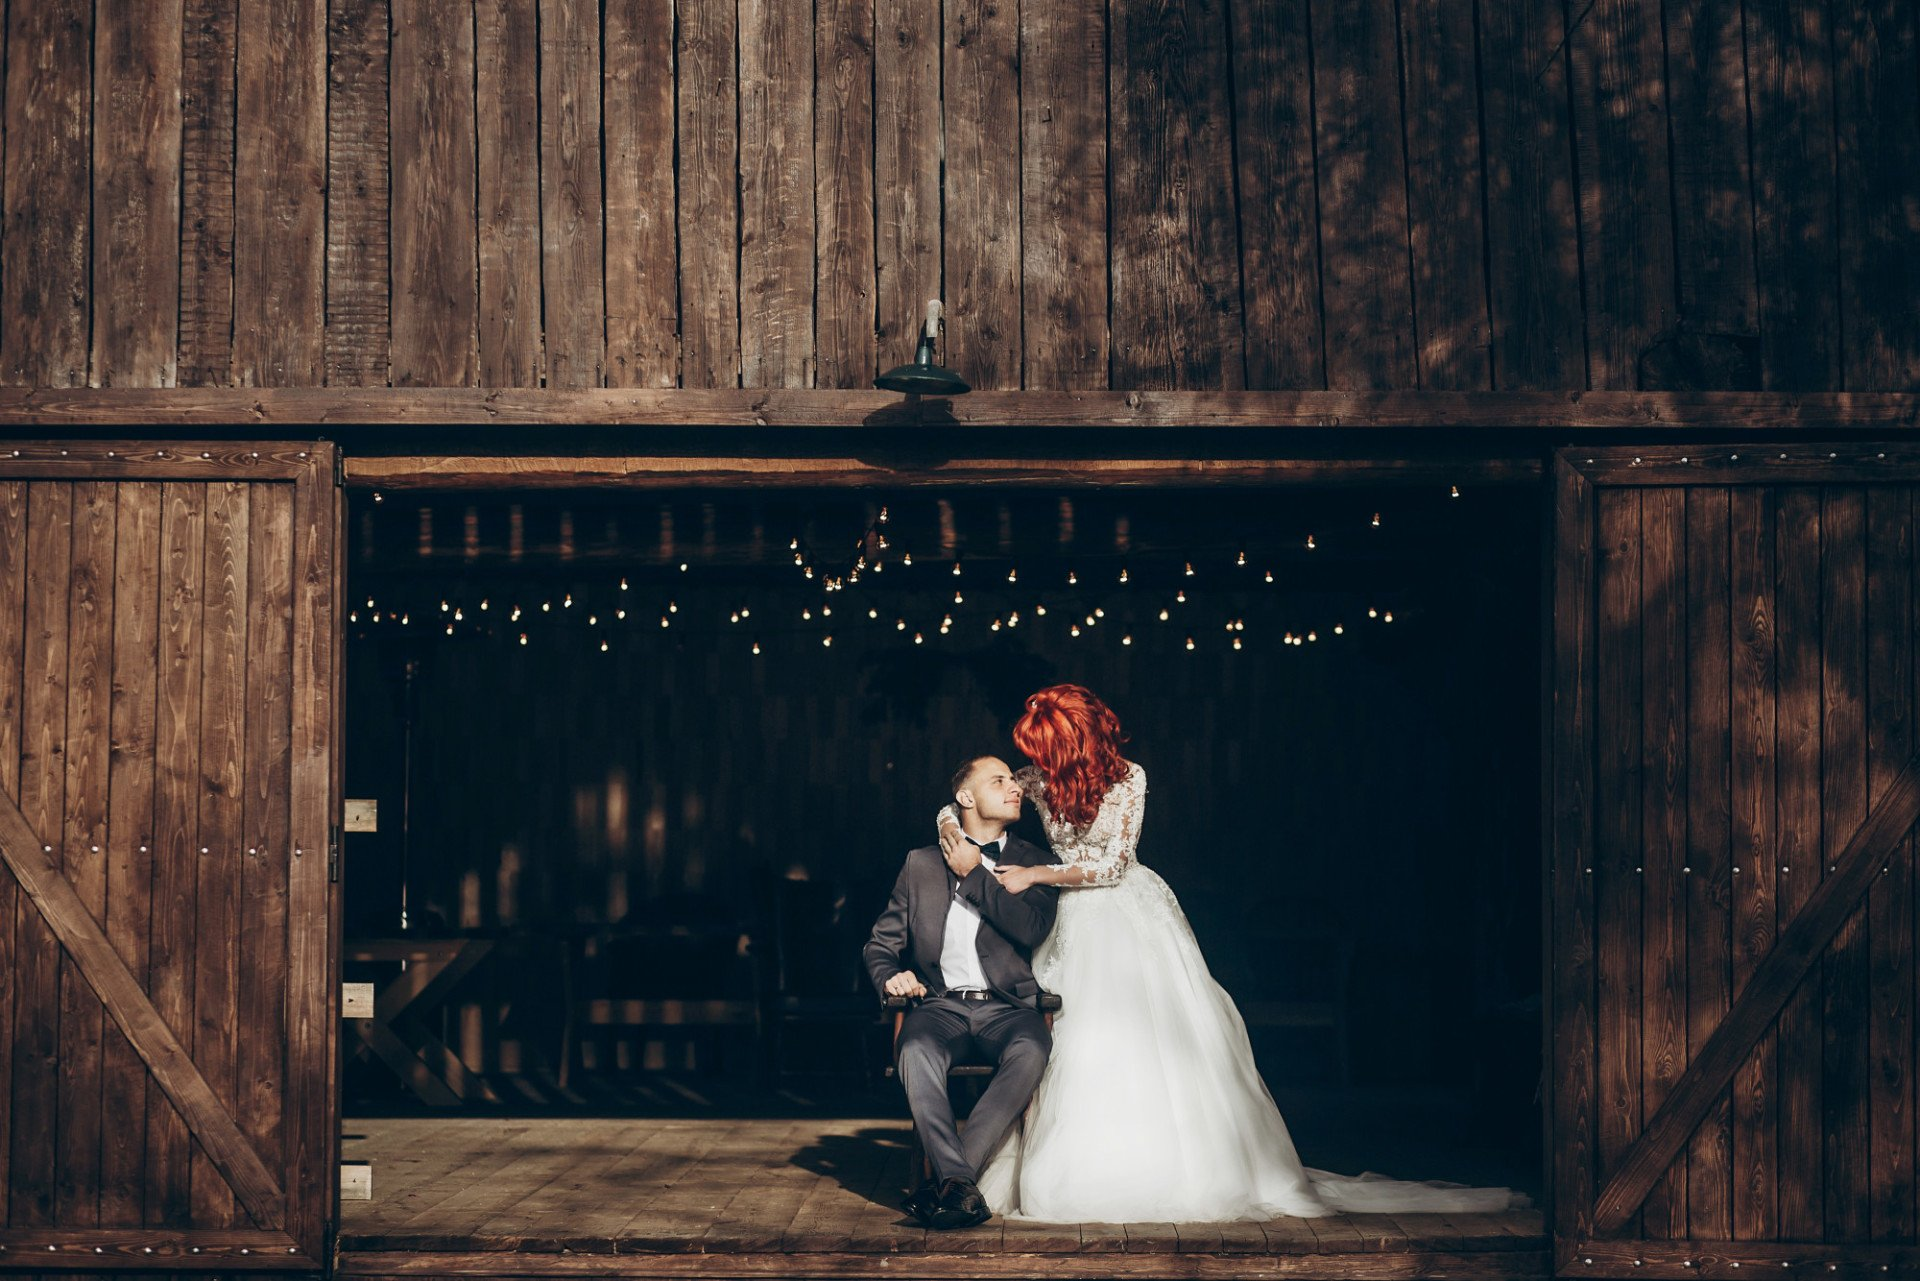 10 Ideas to Plan the Perfect Rustic Barn Wedding